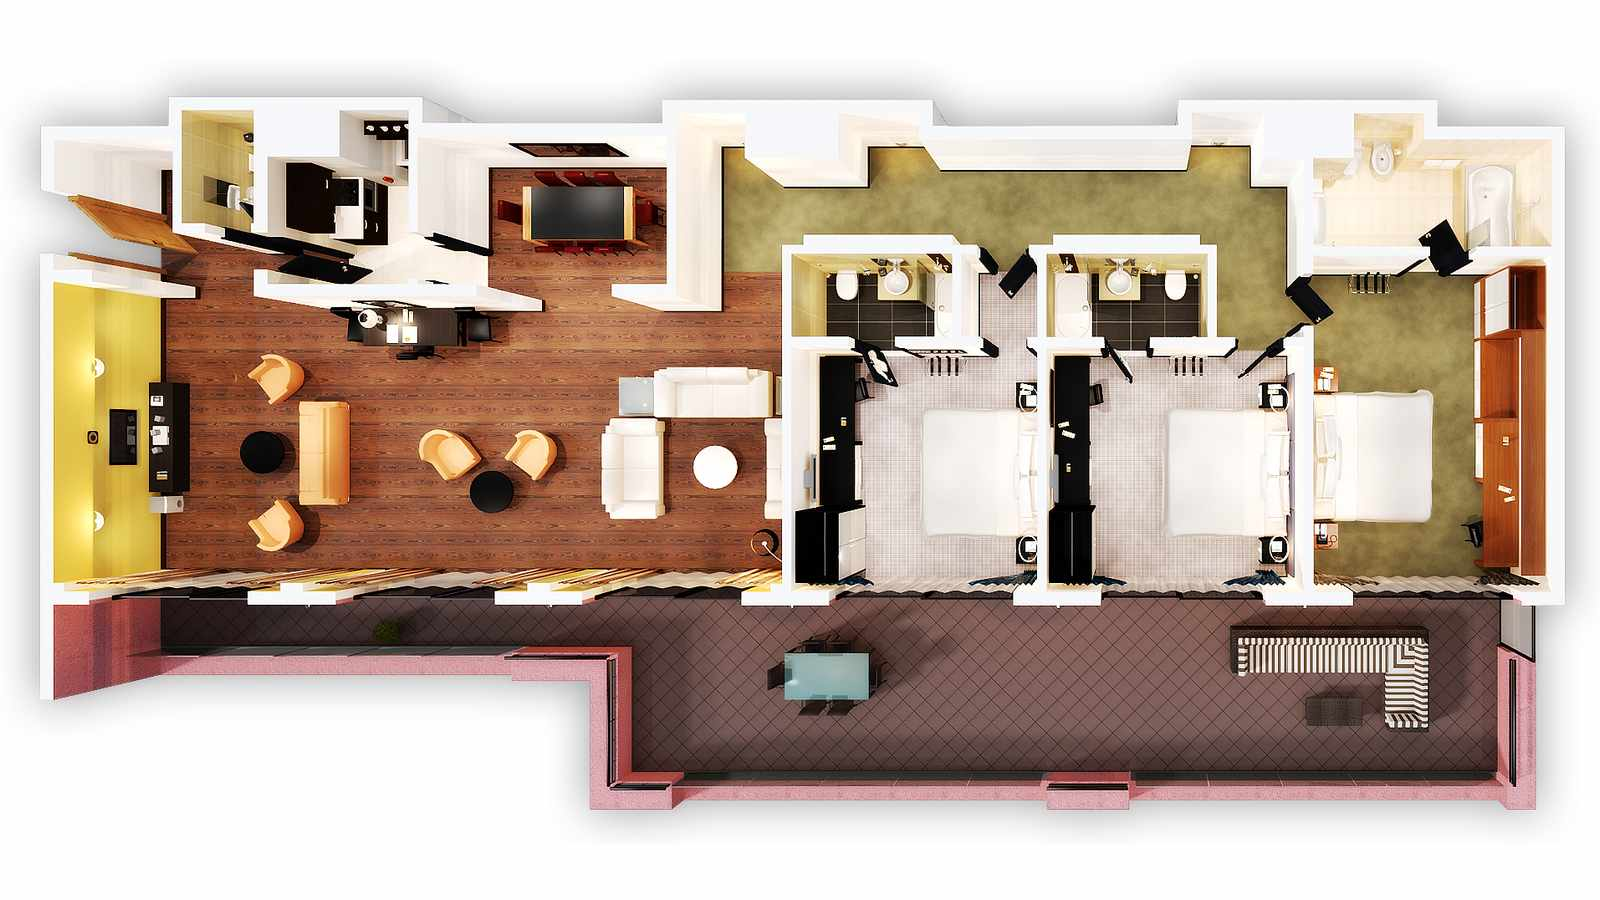 Floor plan of the presidential penthouse suite